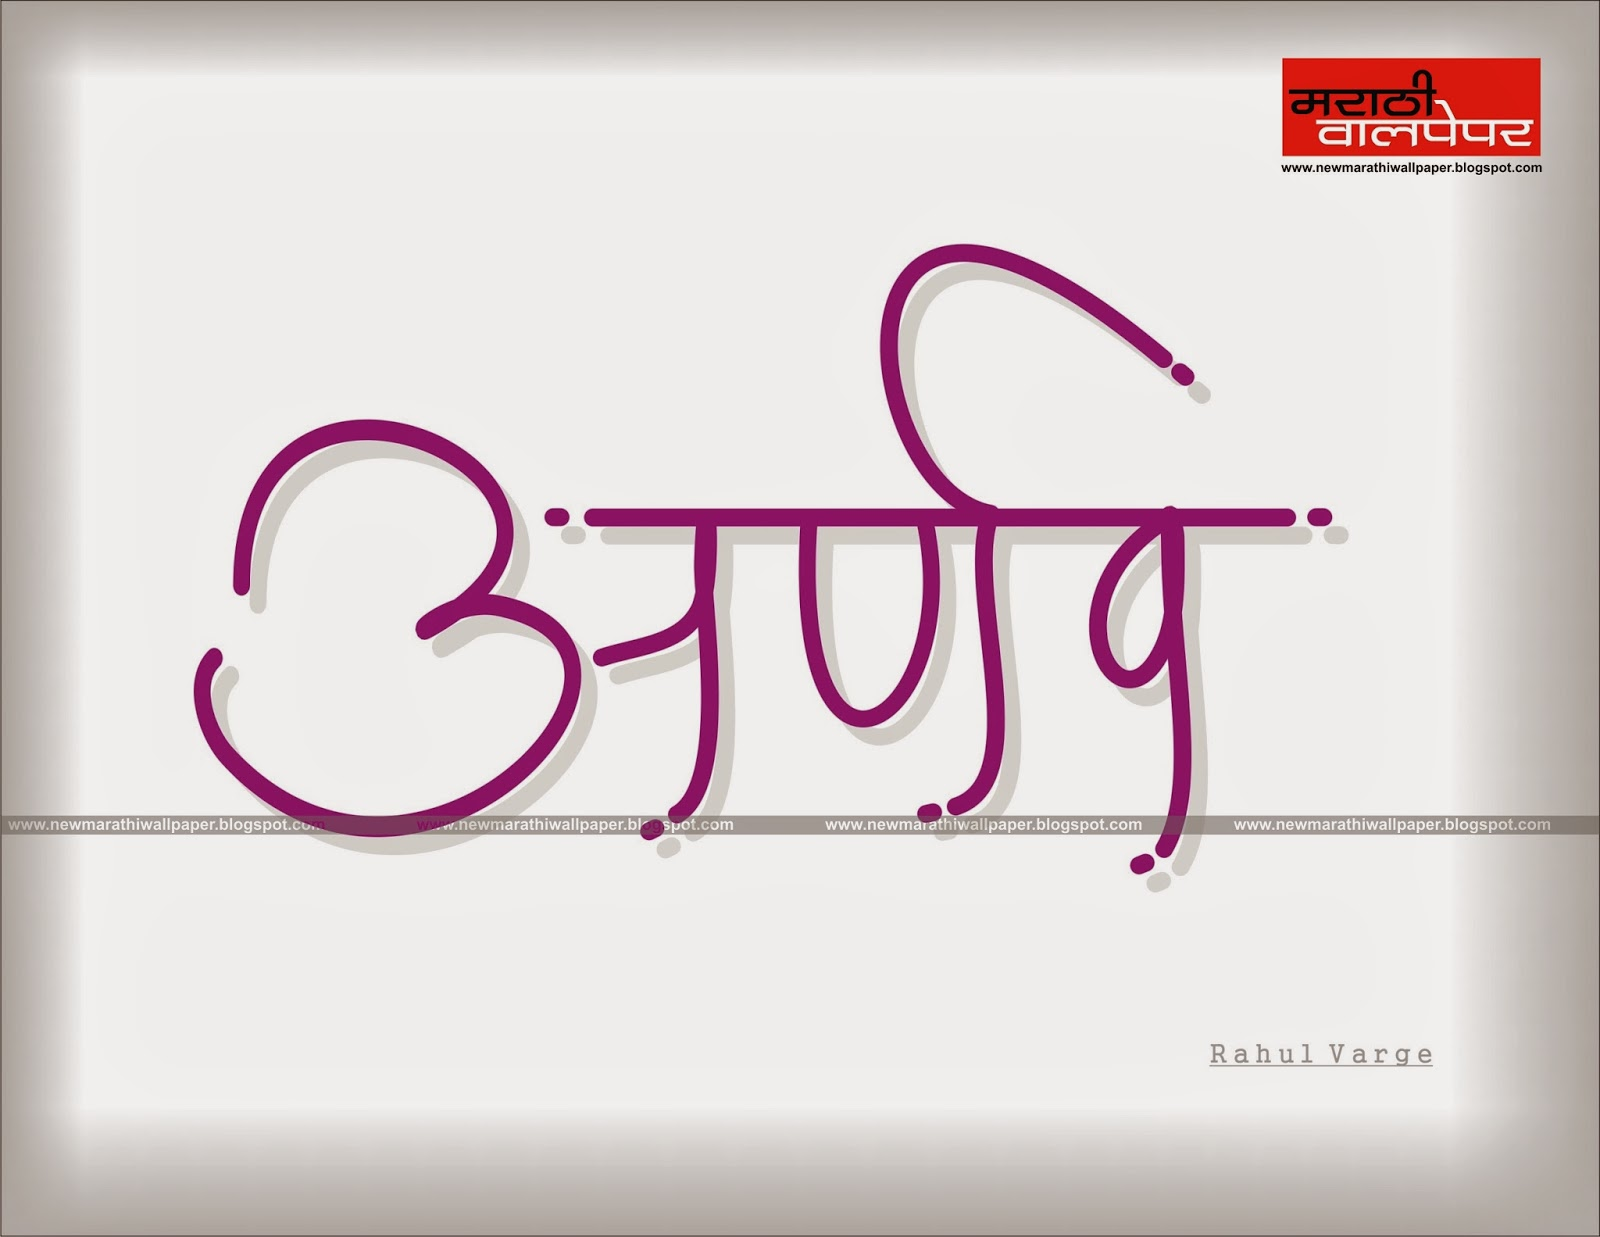 Aranv name wallpaper new marathi